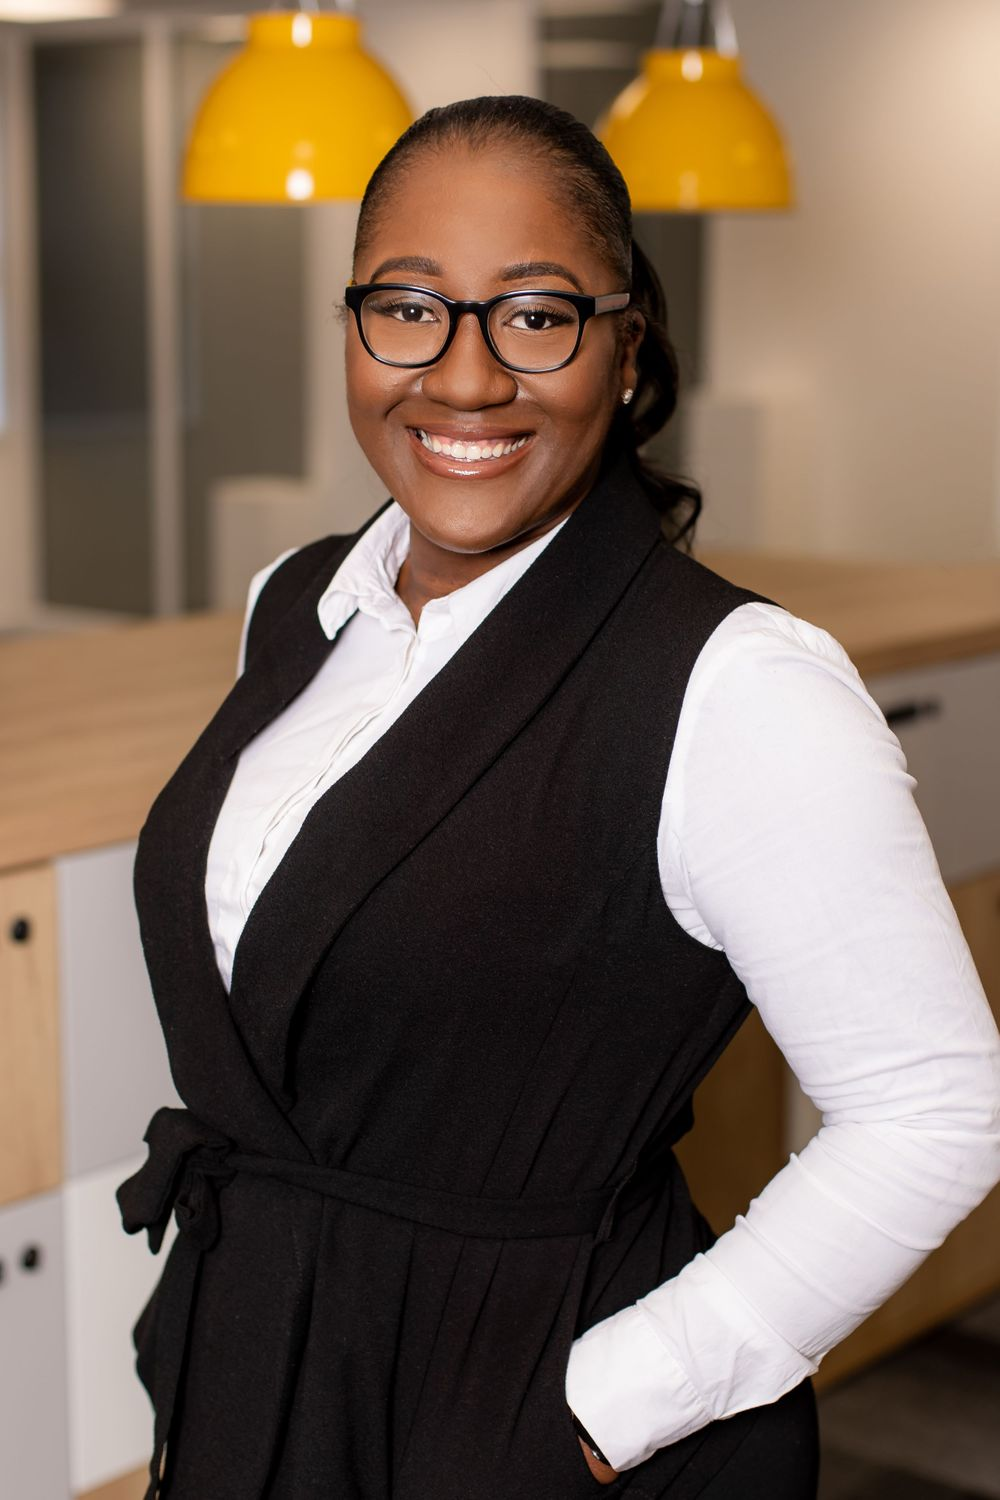 A black woman wearing glasses smiles at the camera for her headshot image - Corporate photography